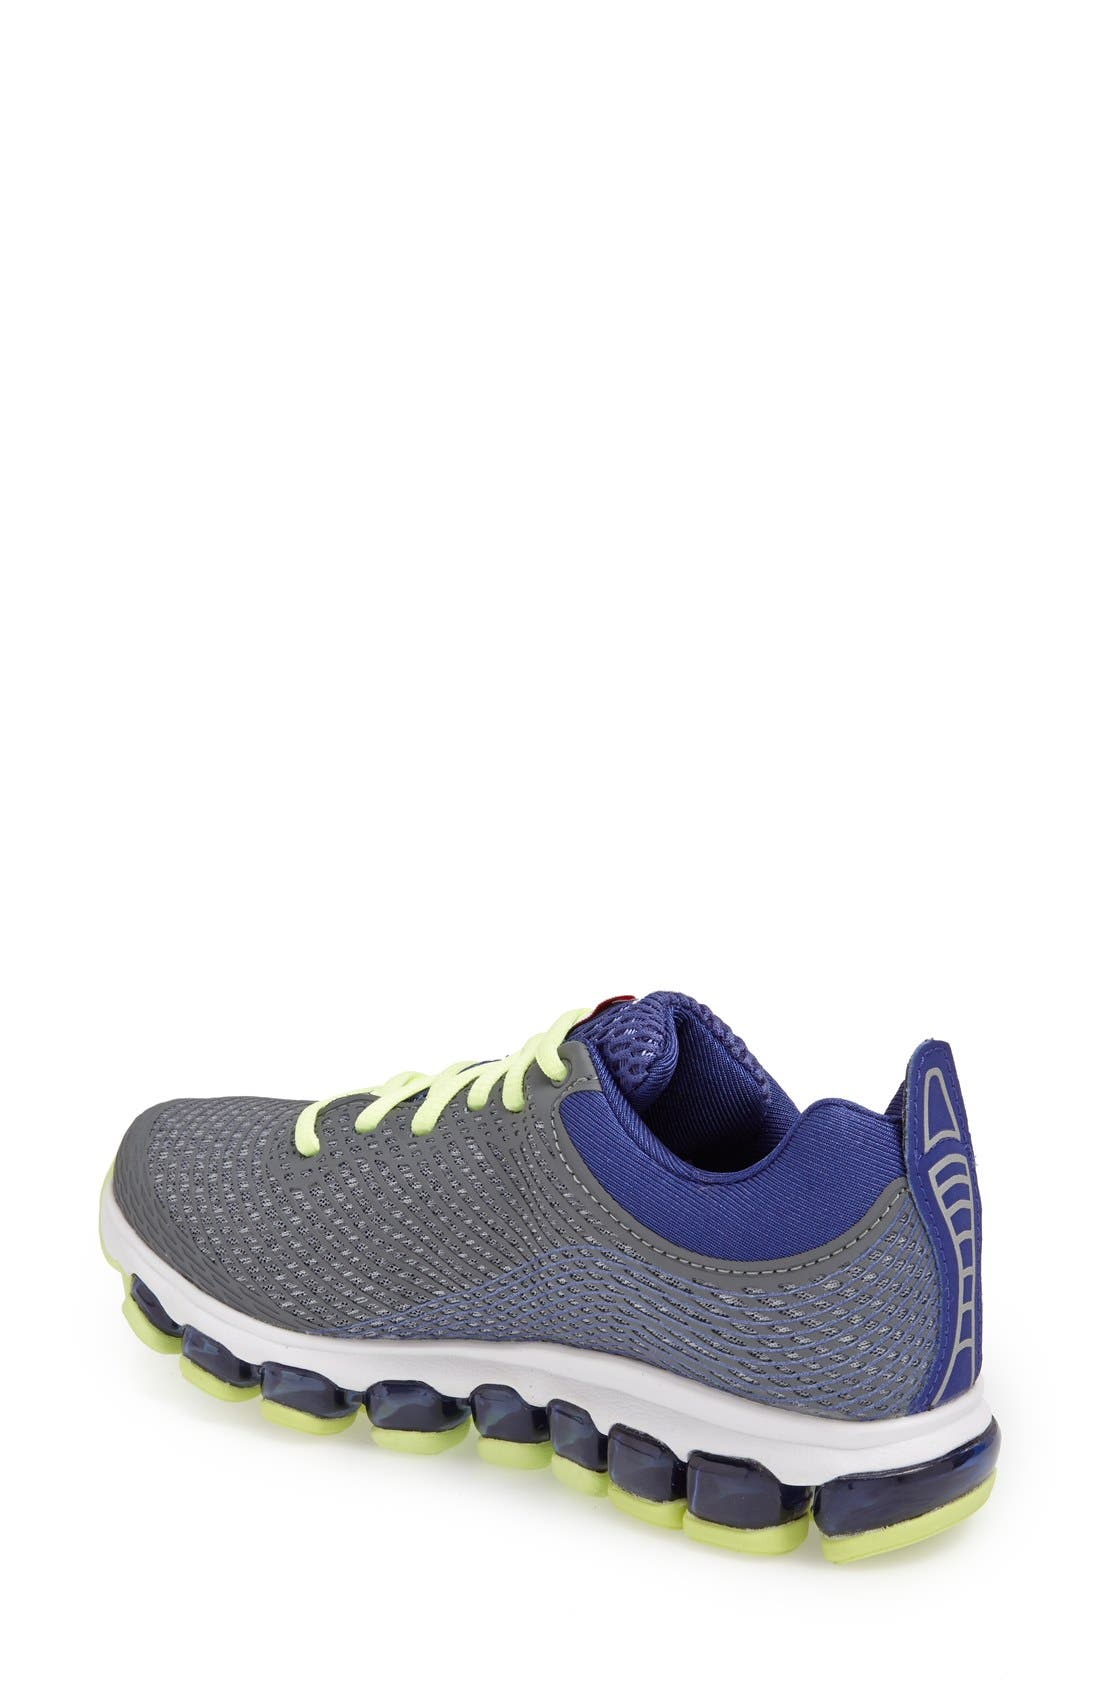 Alternate Image 2  - Reebok 'Z-Jet - CrossFit' Running Shoe (Women)